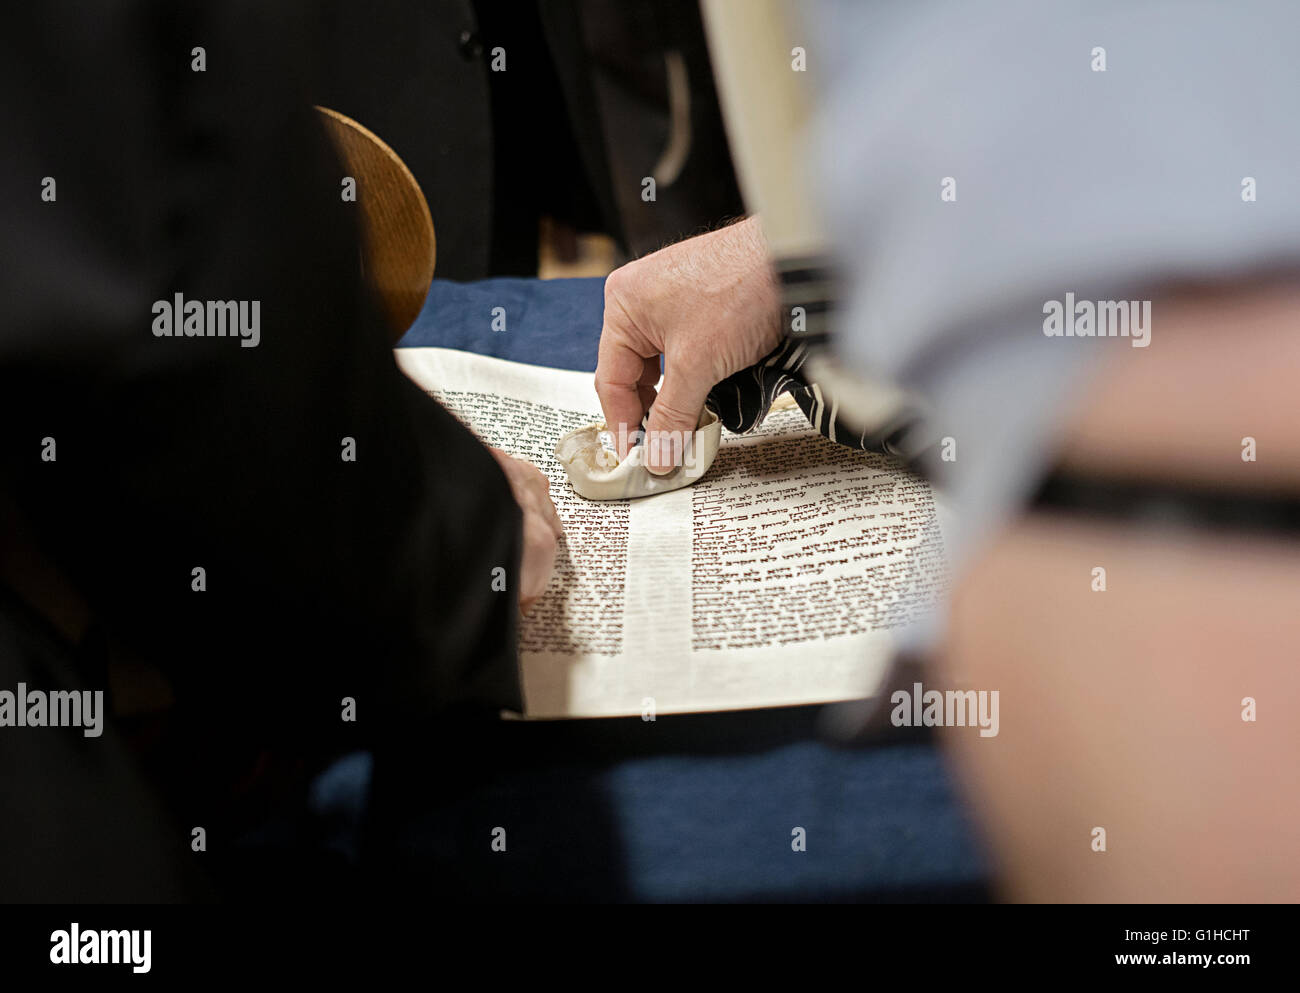 A religious Jewish man touches a spot where a Torah reading will begin when he is called up for a blessing. Brooklyn, - Stock Image